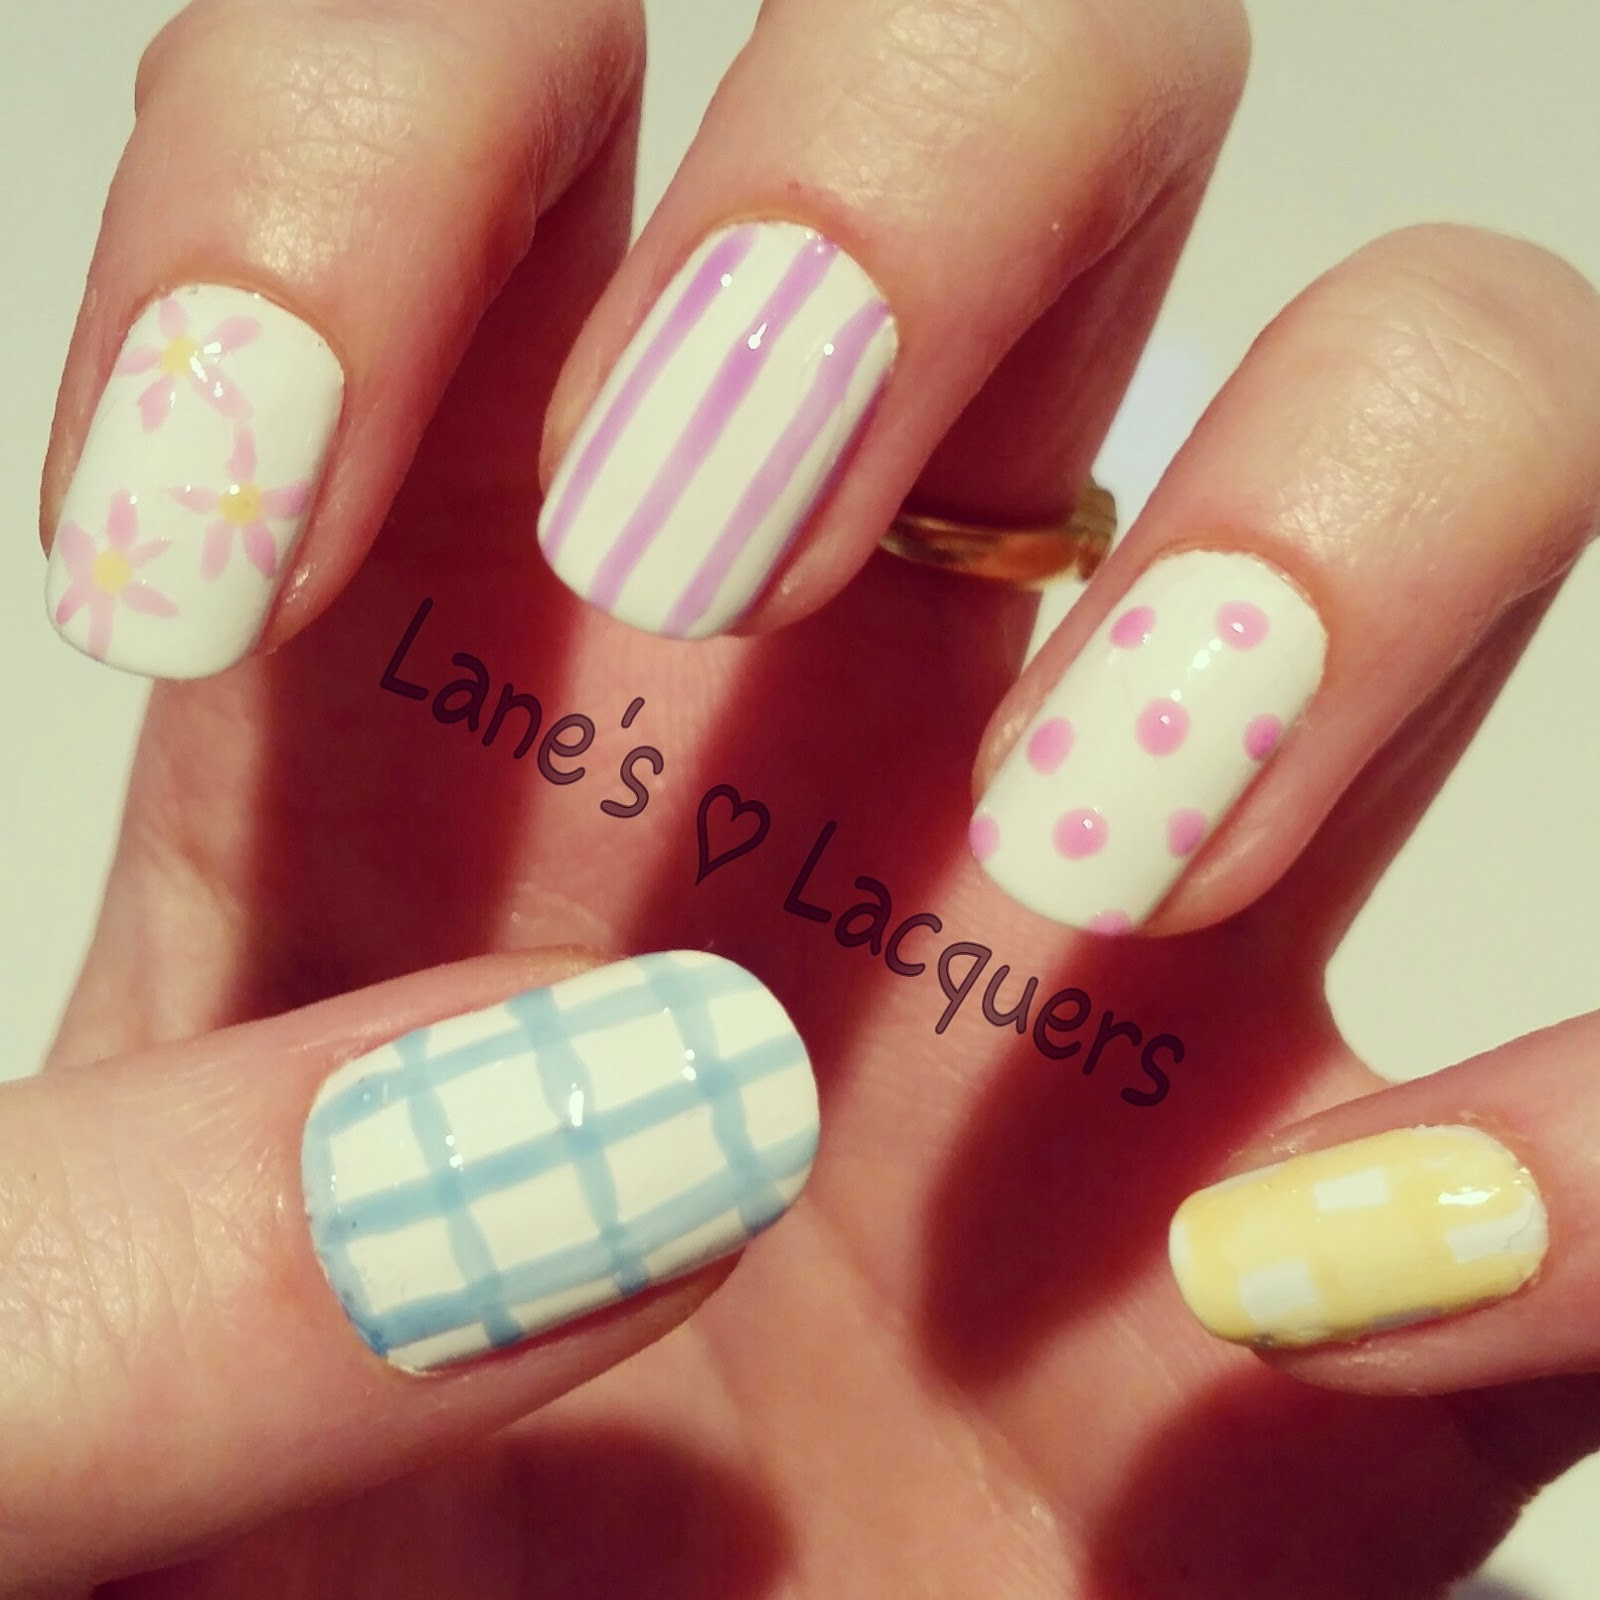 opi-sheer-tints-freehand-spring-pattern-skittle-nail-art